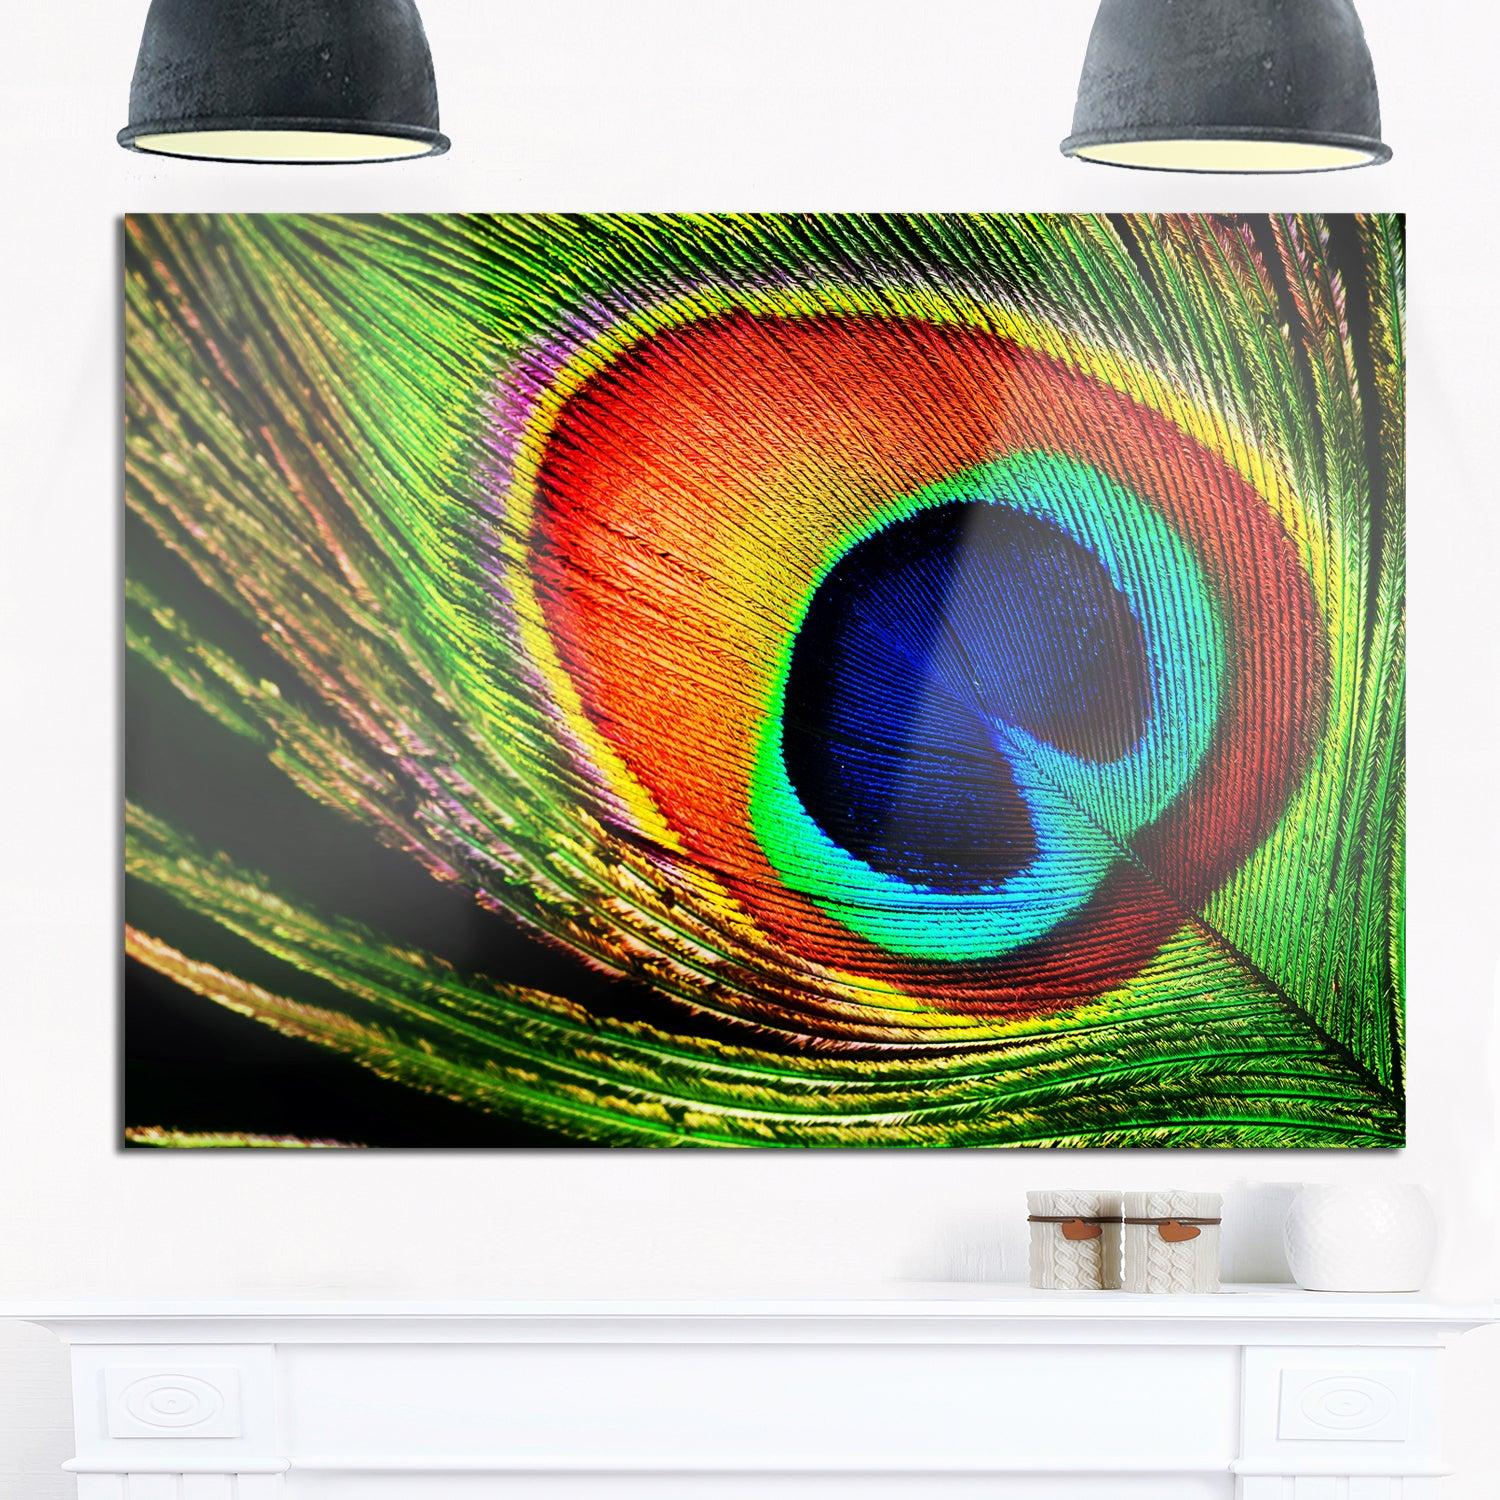 Peacock feather photography glossy metal wall art free shipping today overstock 19553084